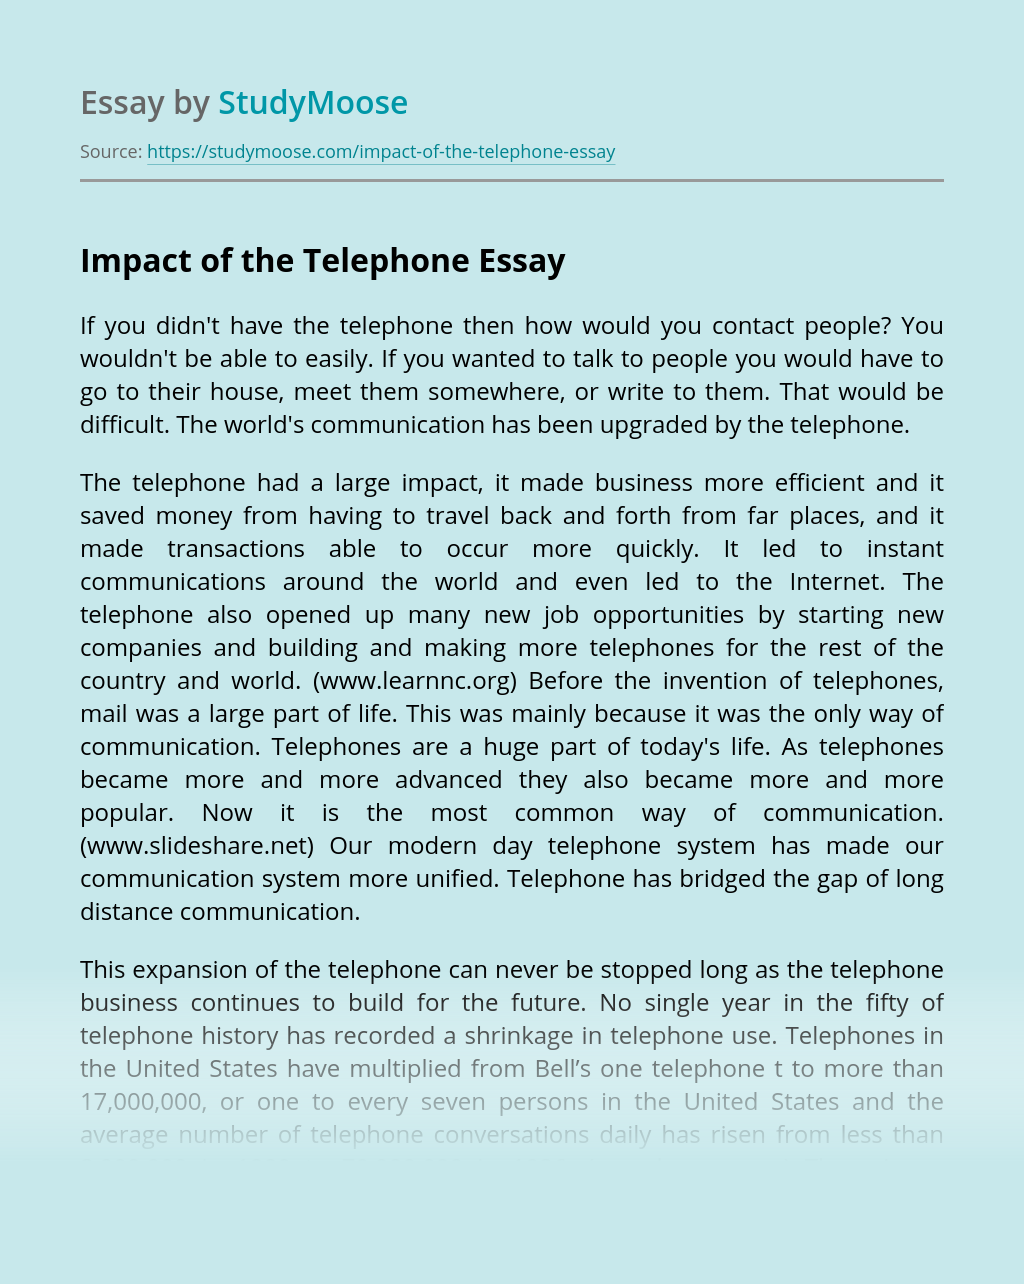 Impact of the Telephone